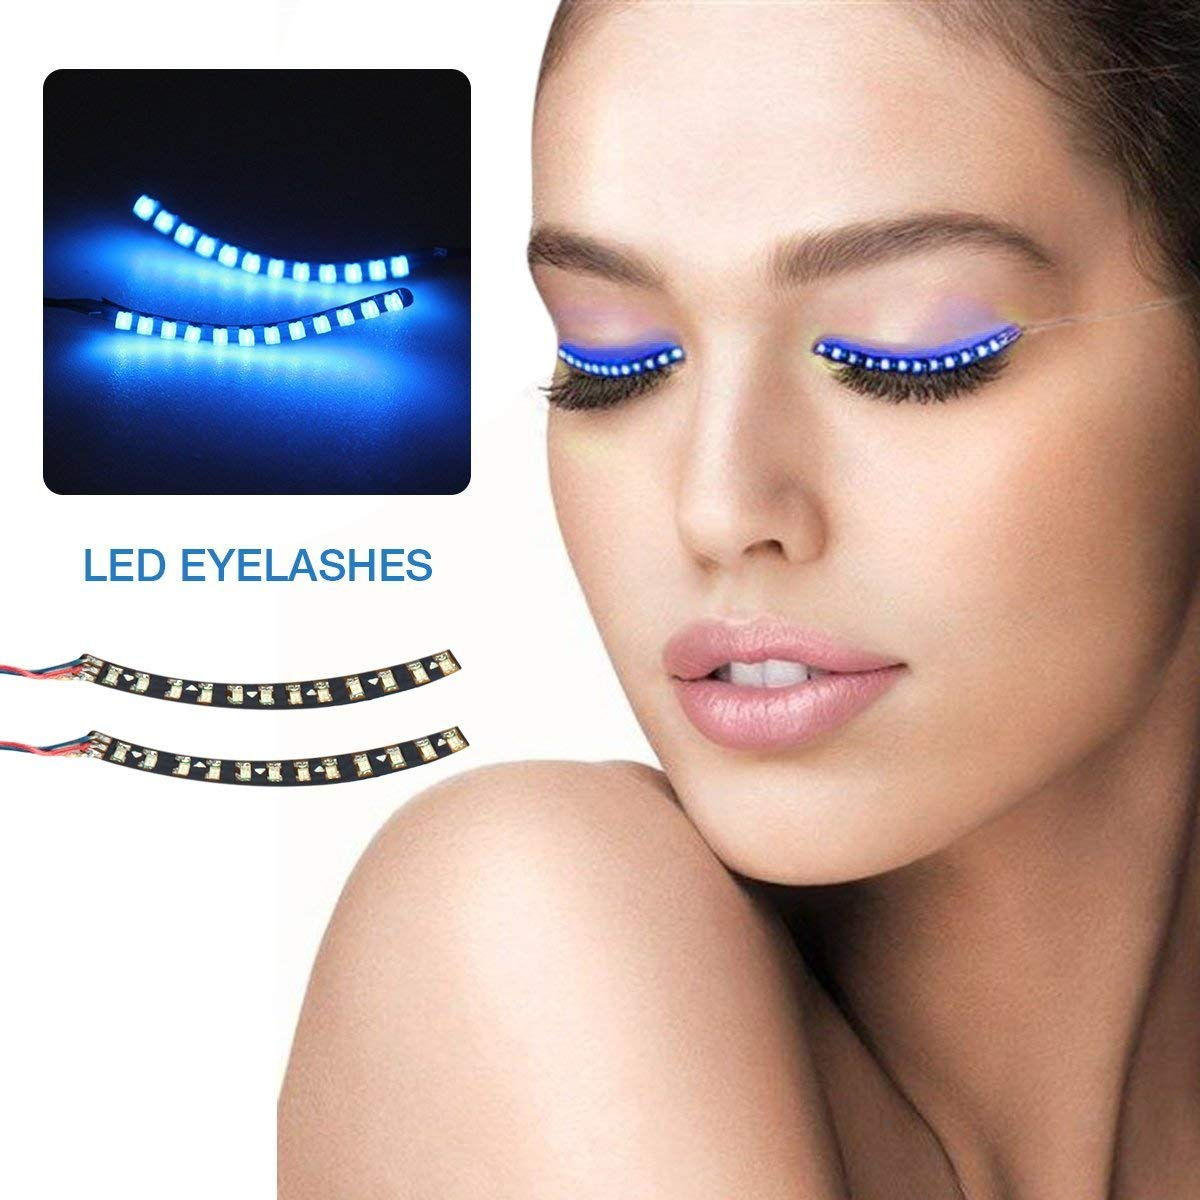 Waterproof LED Eyelashes - ZENUN Unisex Flashes Interactive Changing F. Lashes Luminous Shining Charming Eyelid Tape for Party Bar Nightclub Concerts Birthday Gift Halloween - Blue